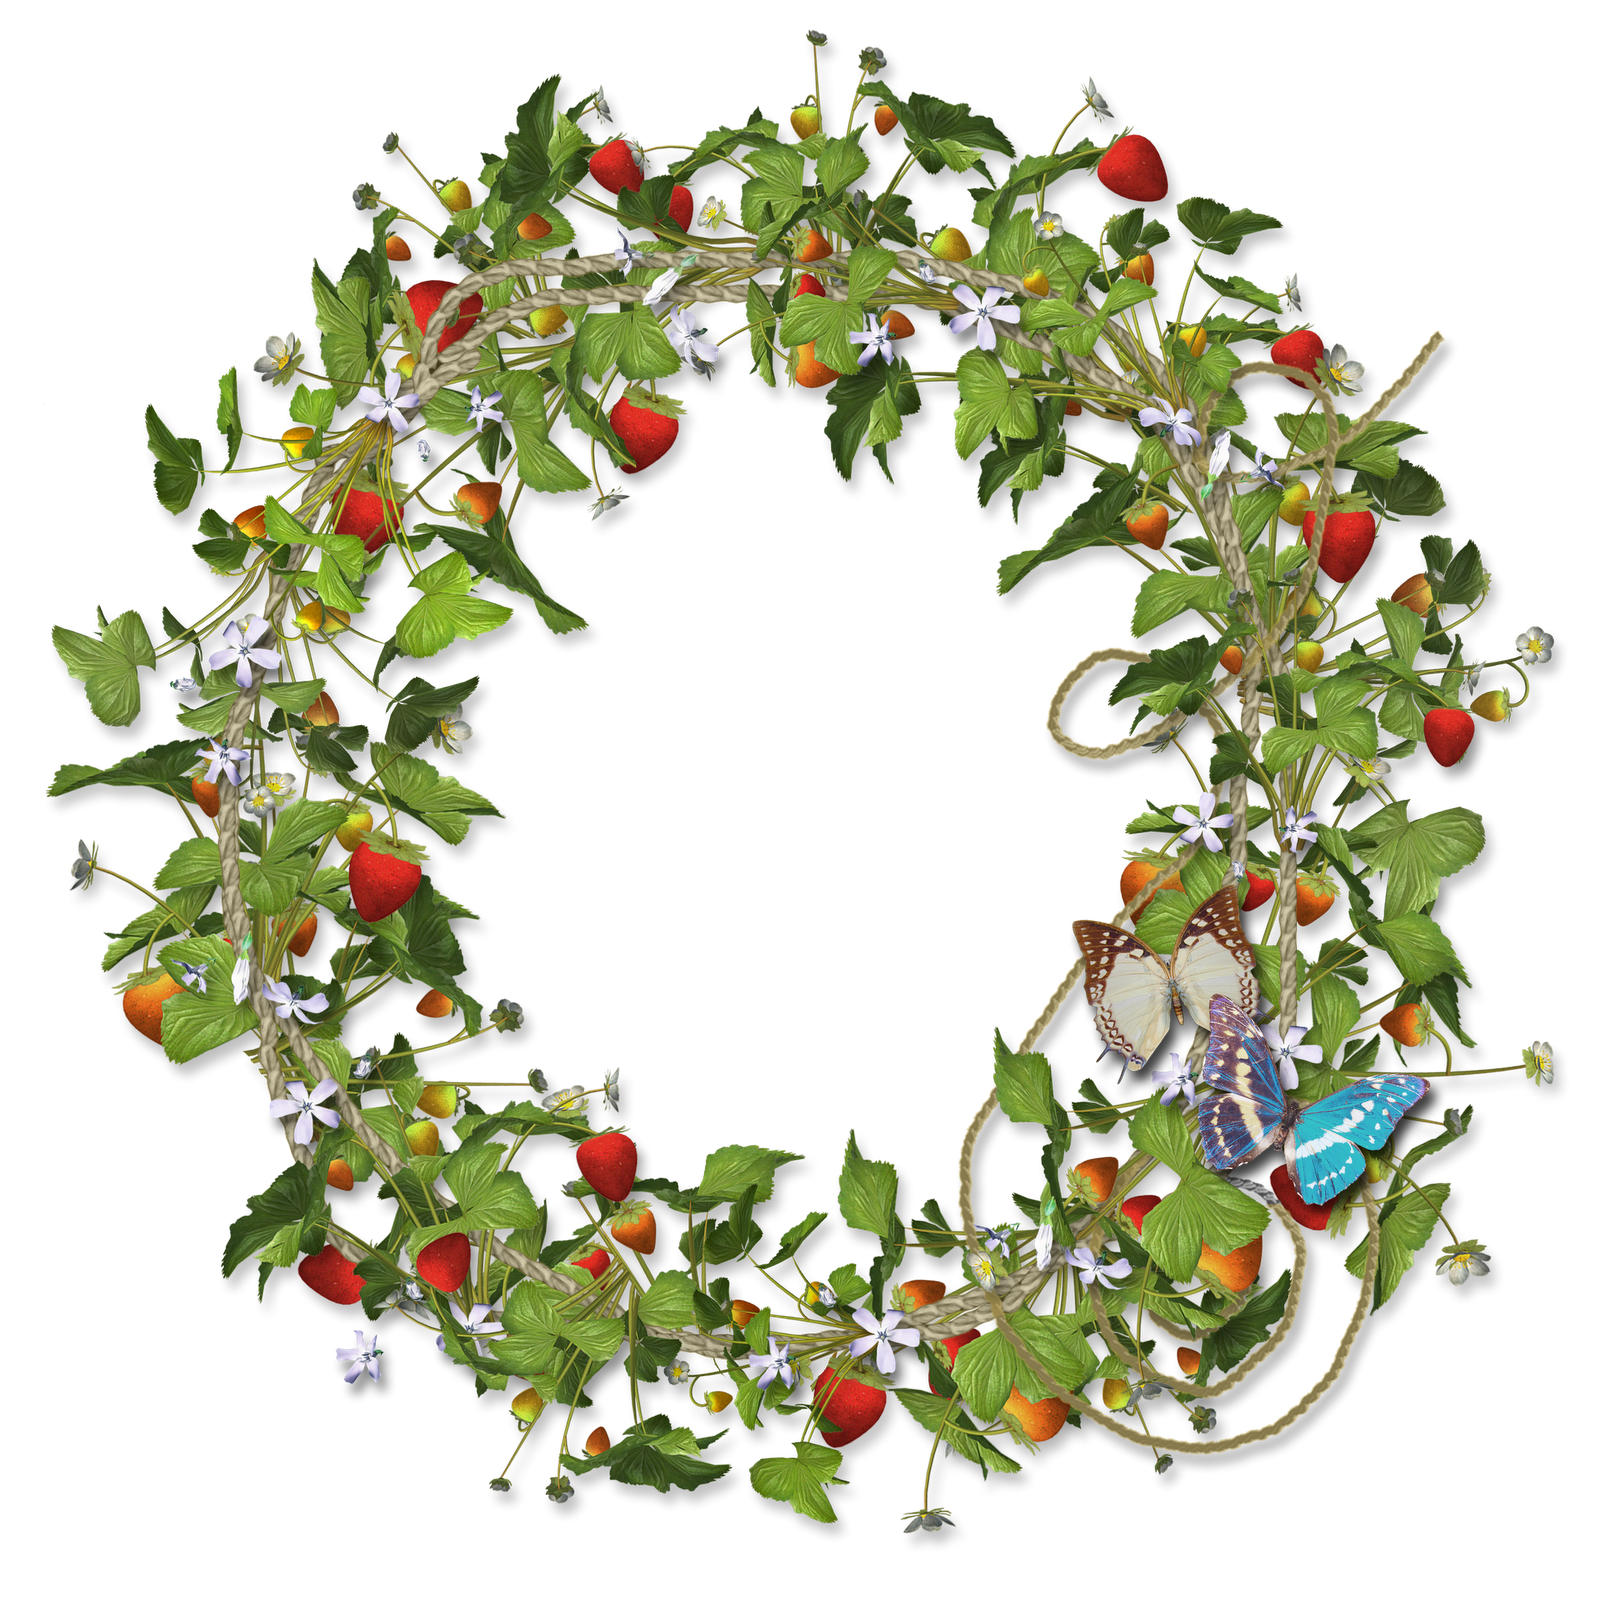 Strawberries clipart wreath. Love this image it